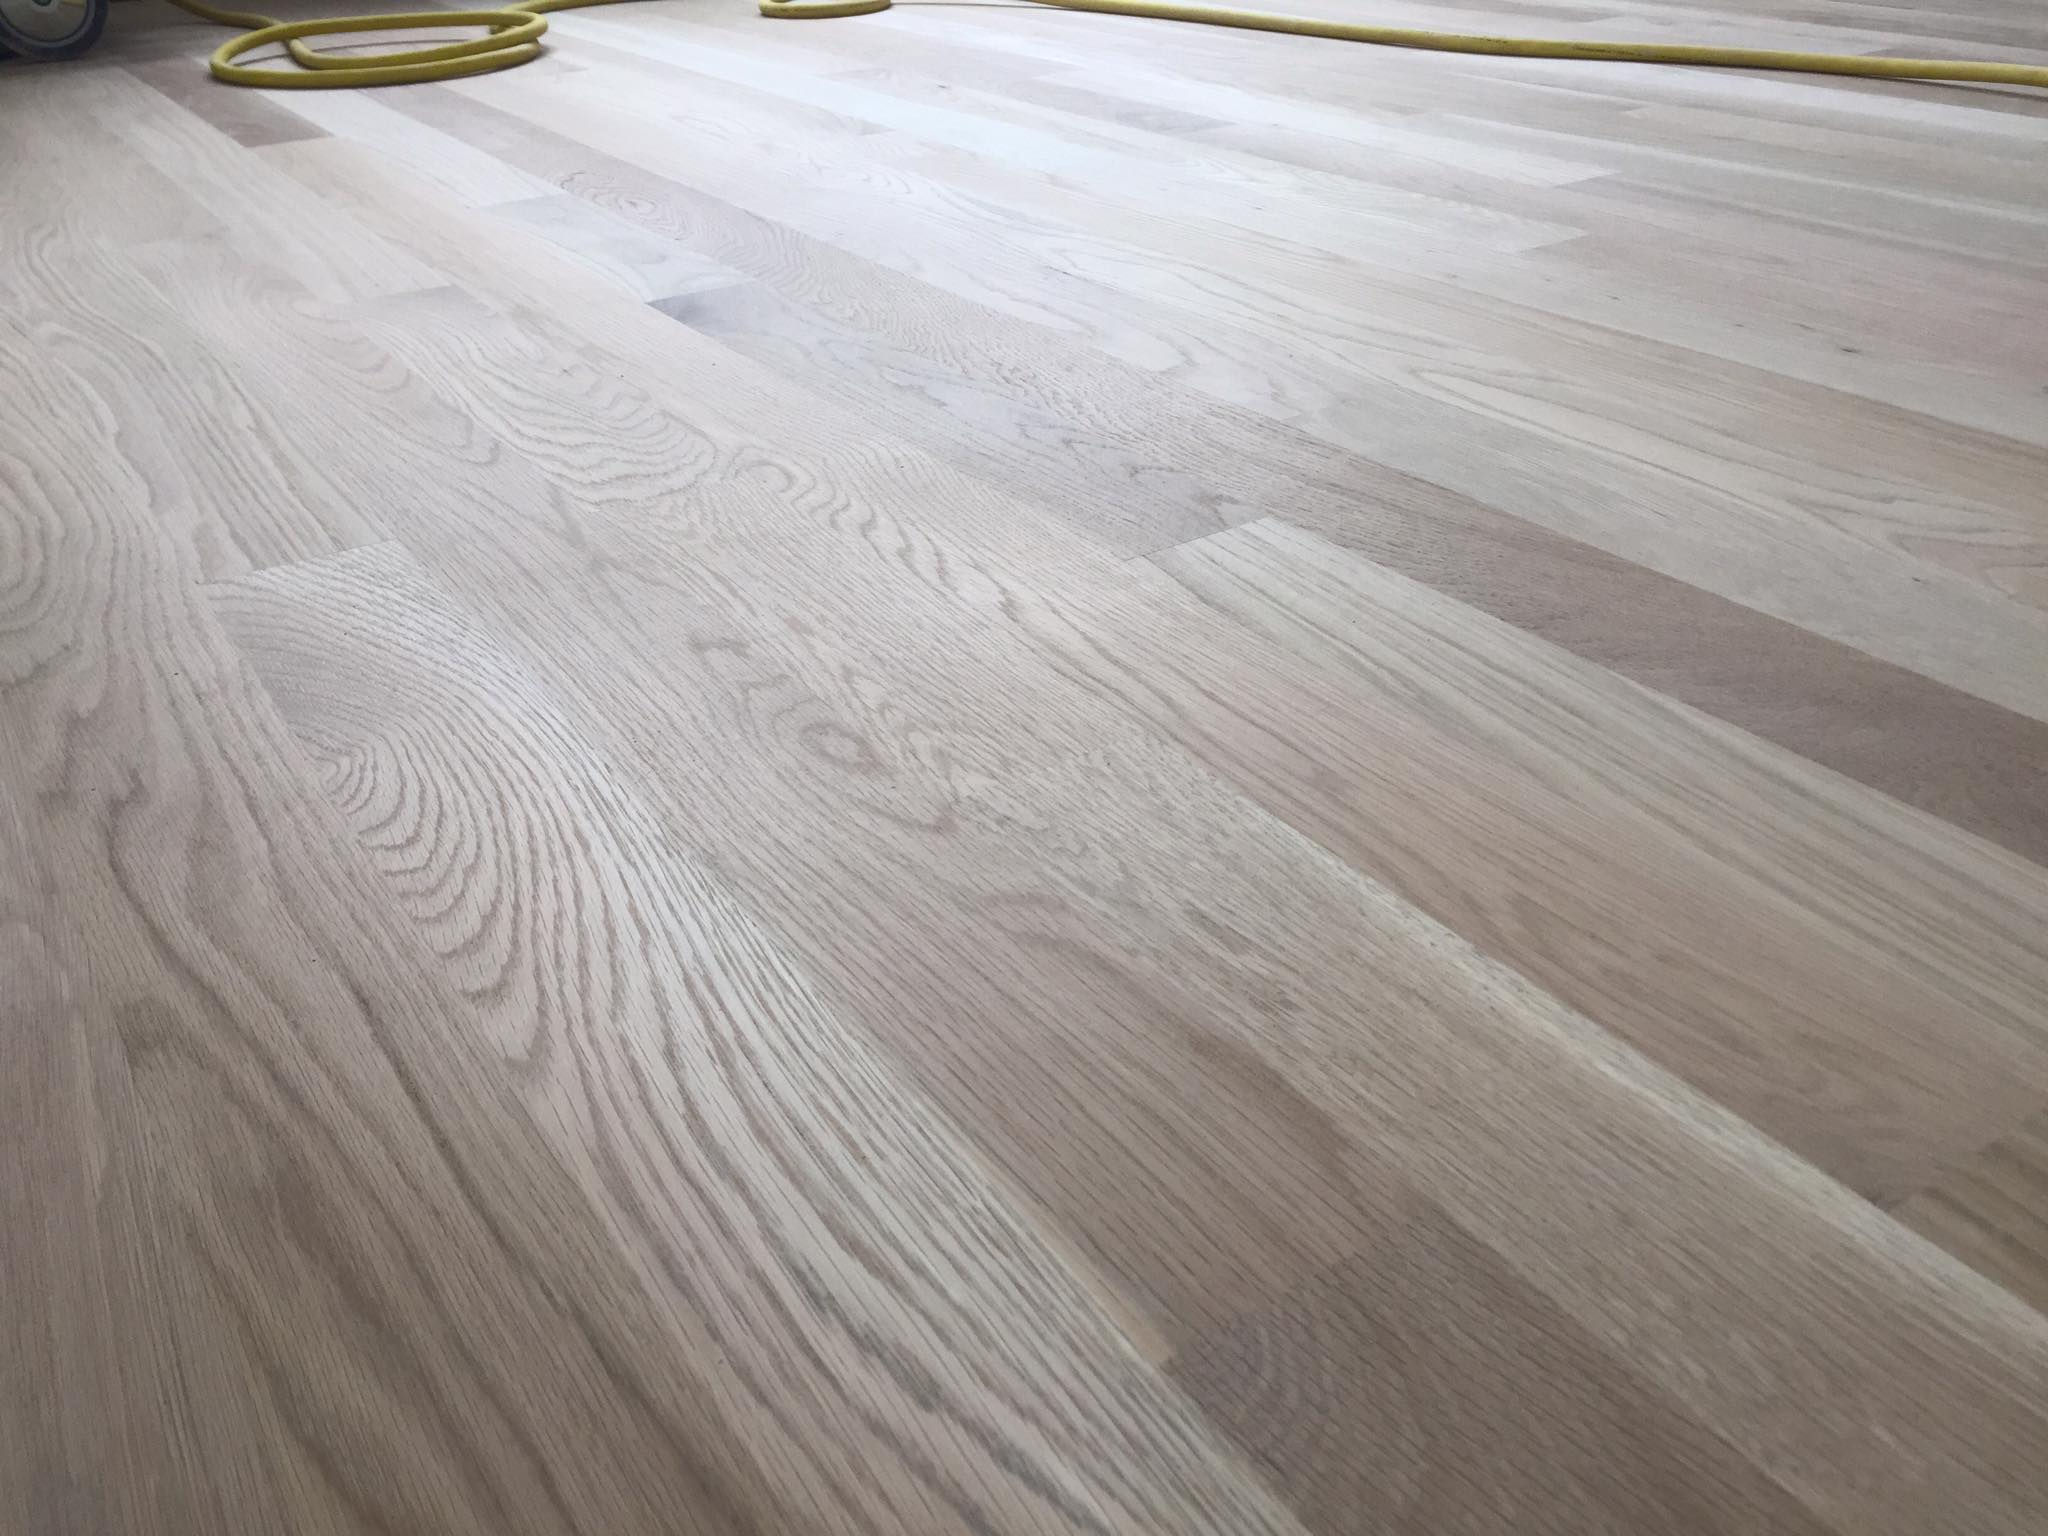 Solid white oak 3 1 4 hardwood floor installation chicago for Hardwood flooring